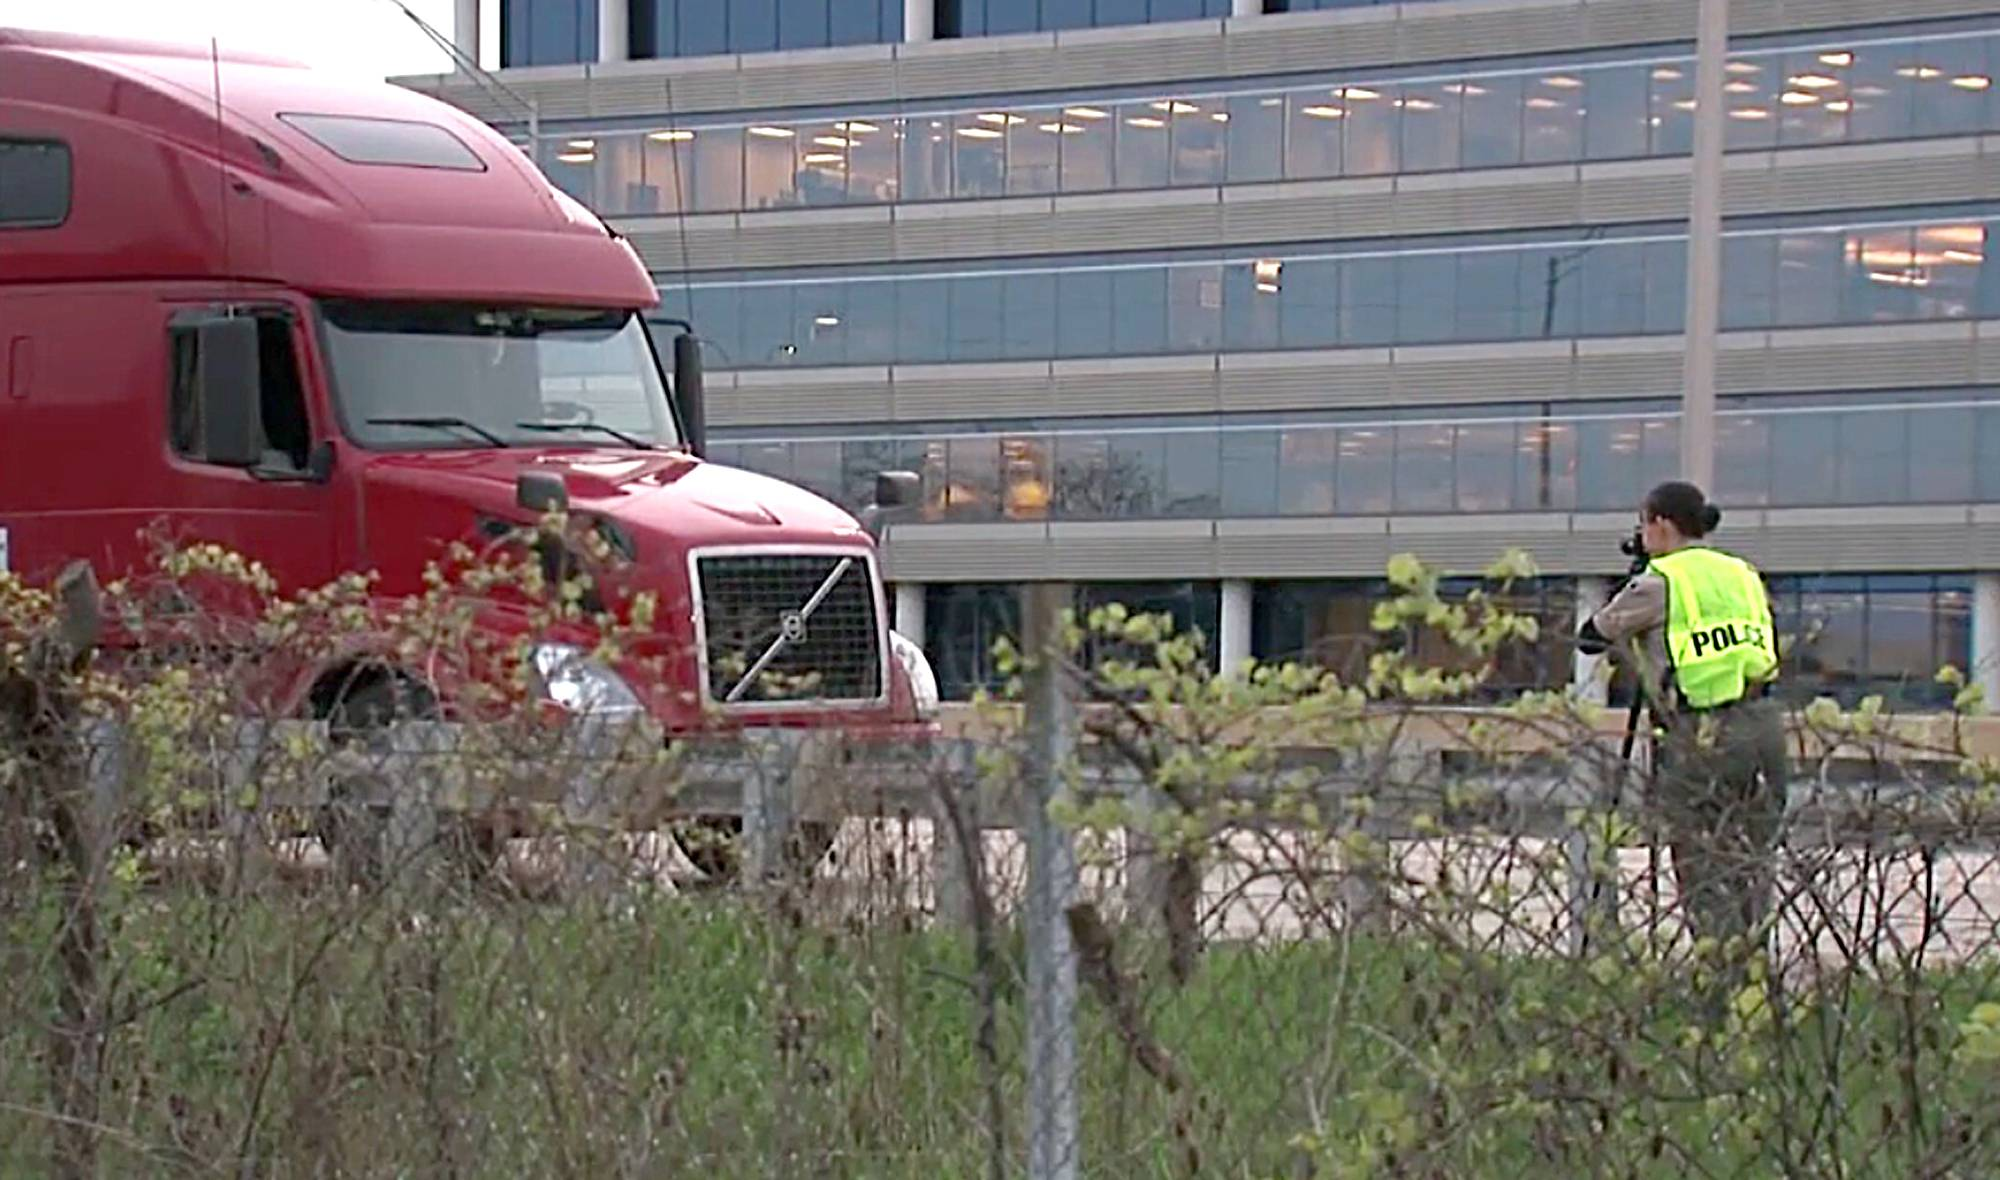 Law enforcement officials say it was a combination of eyewitness accounts and video surveillance that allowed them to quickly focus their attention on Anthony Tillmon as the prime suspect in Friday's shooting death of a truck driver on the Reagan Tollway in Oak Brook.